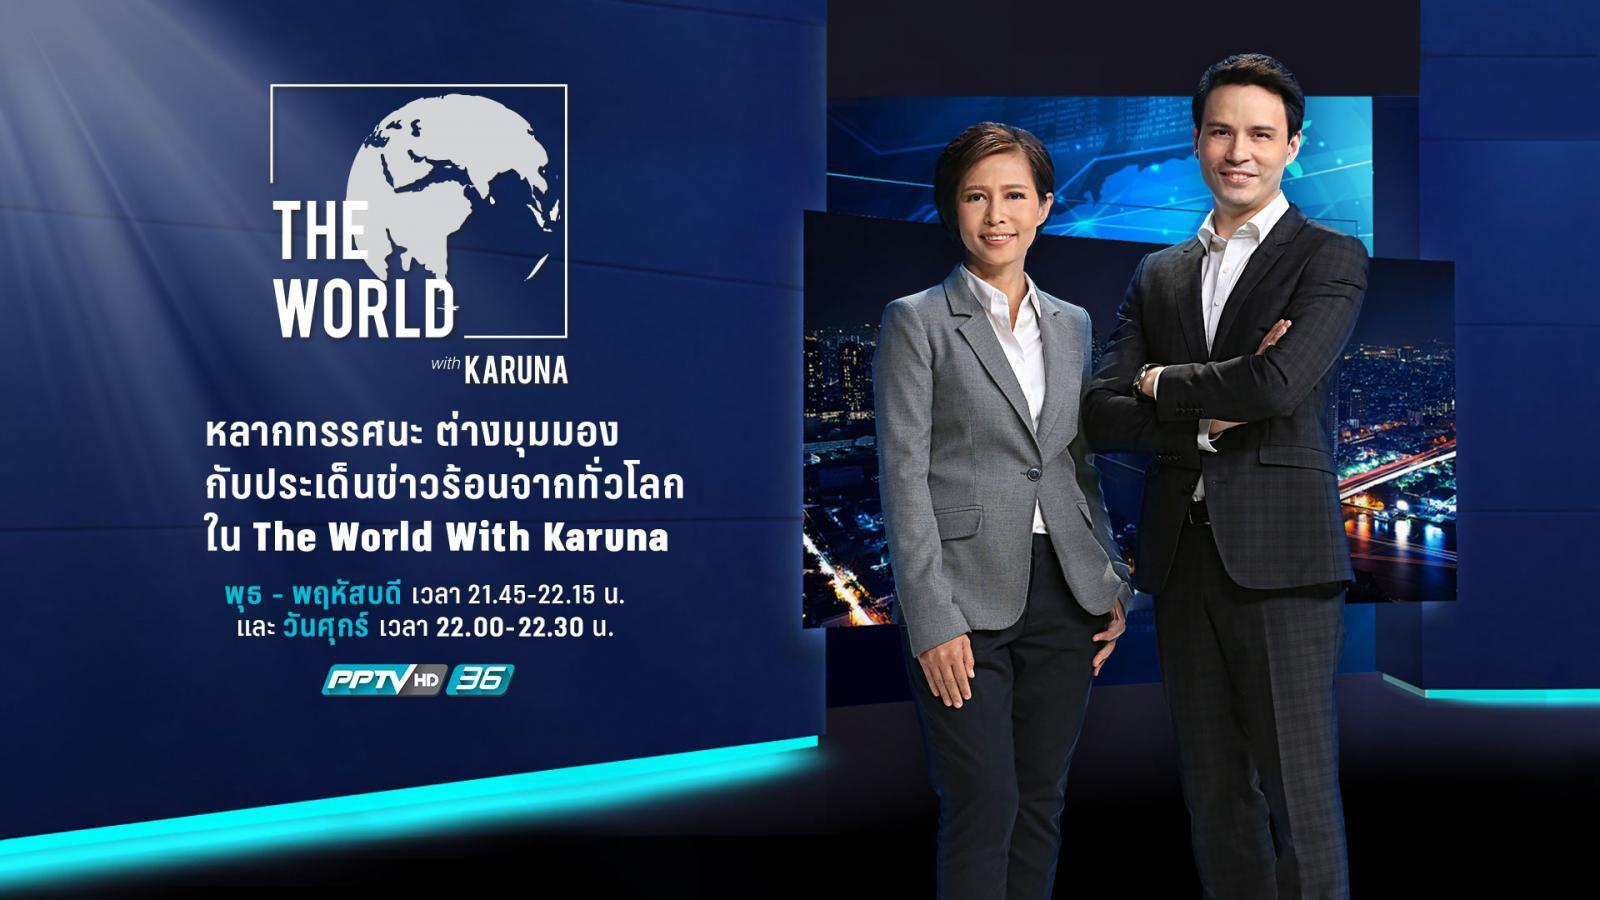 The World with KARUNA